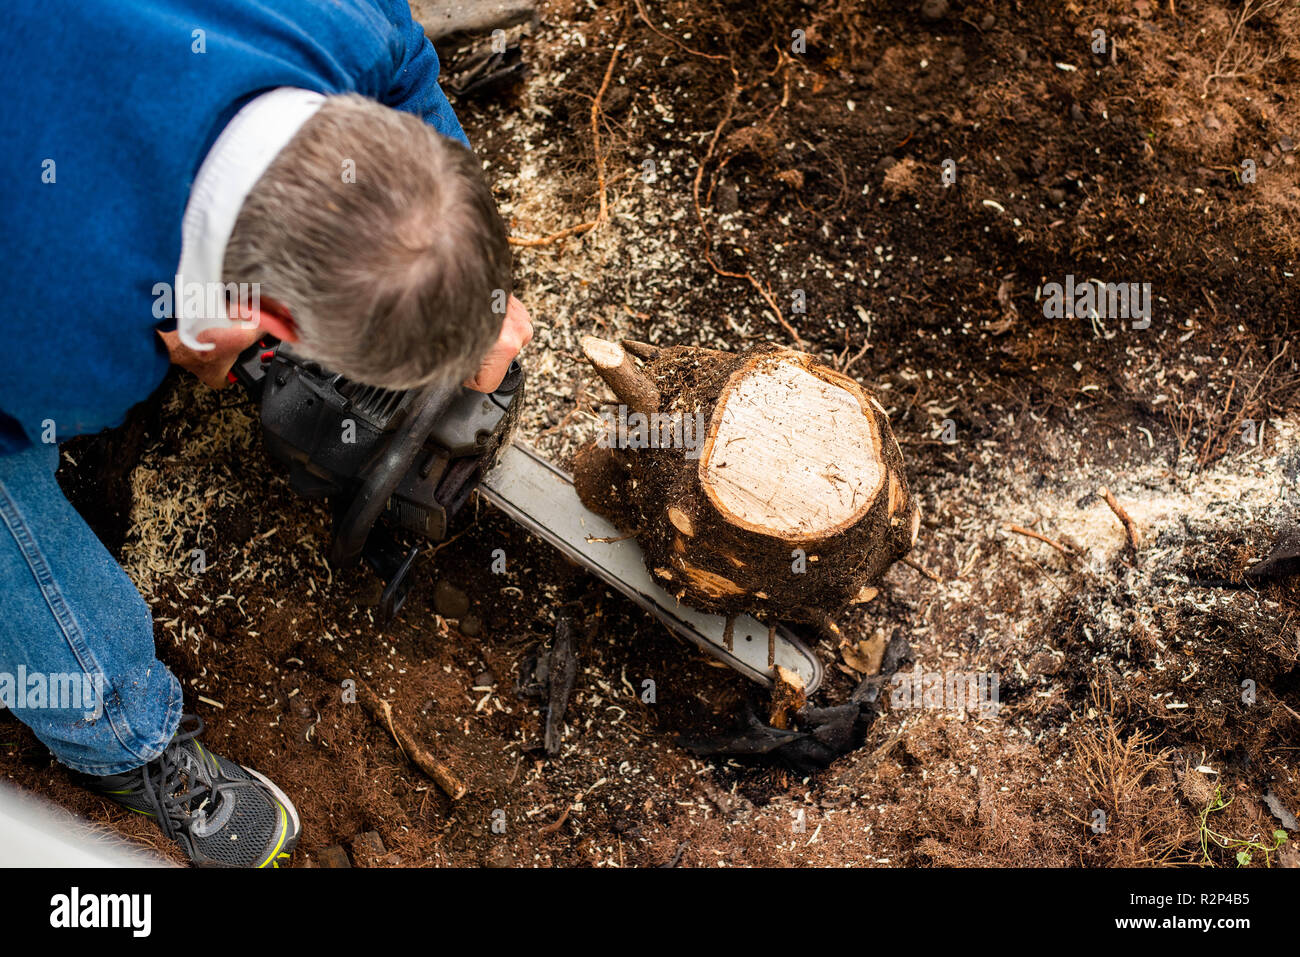 An elderly man cutting out a tree stump in a yard. - Stock Image